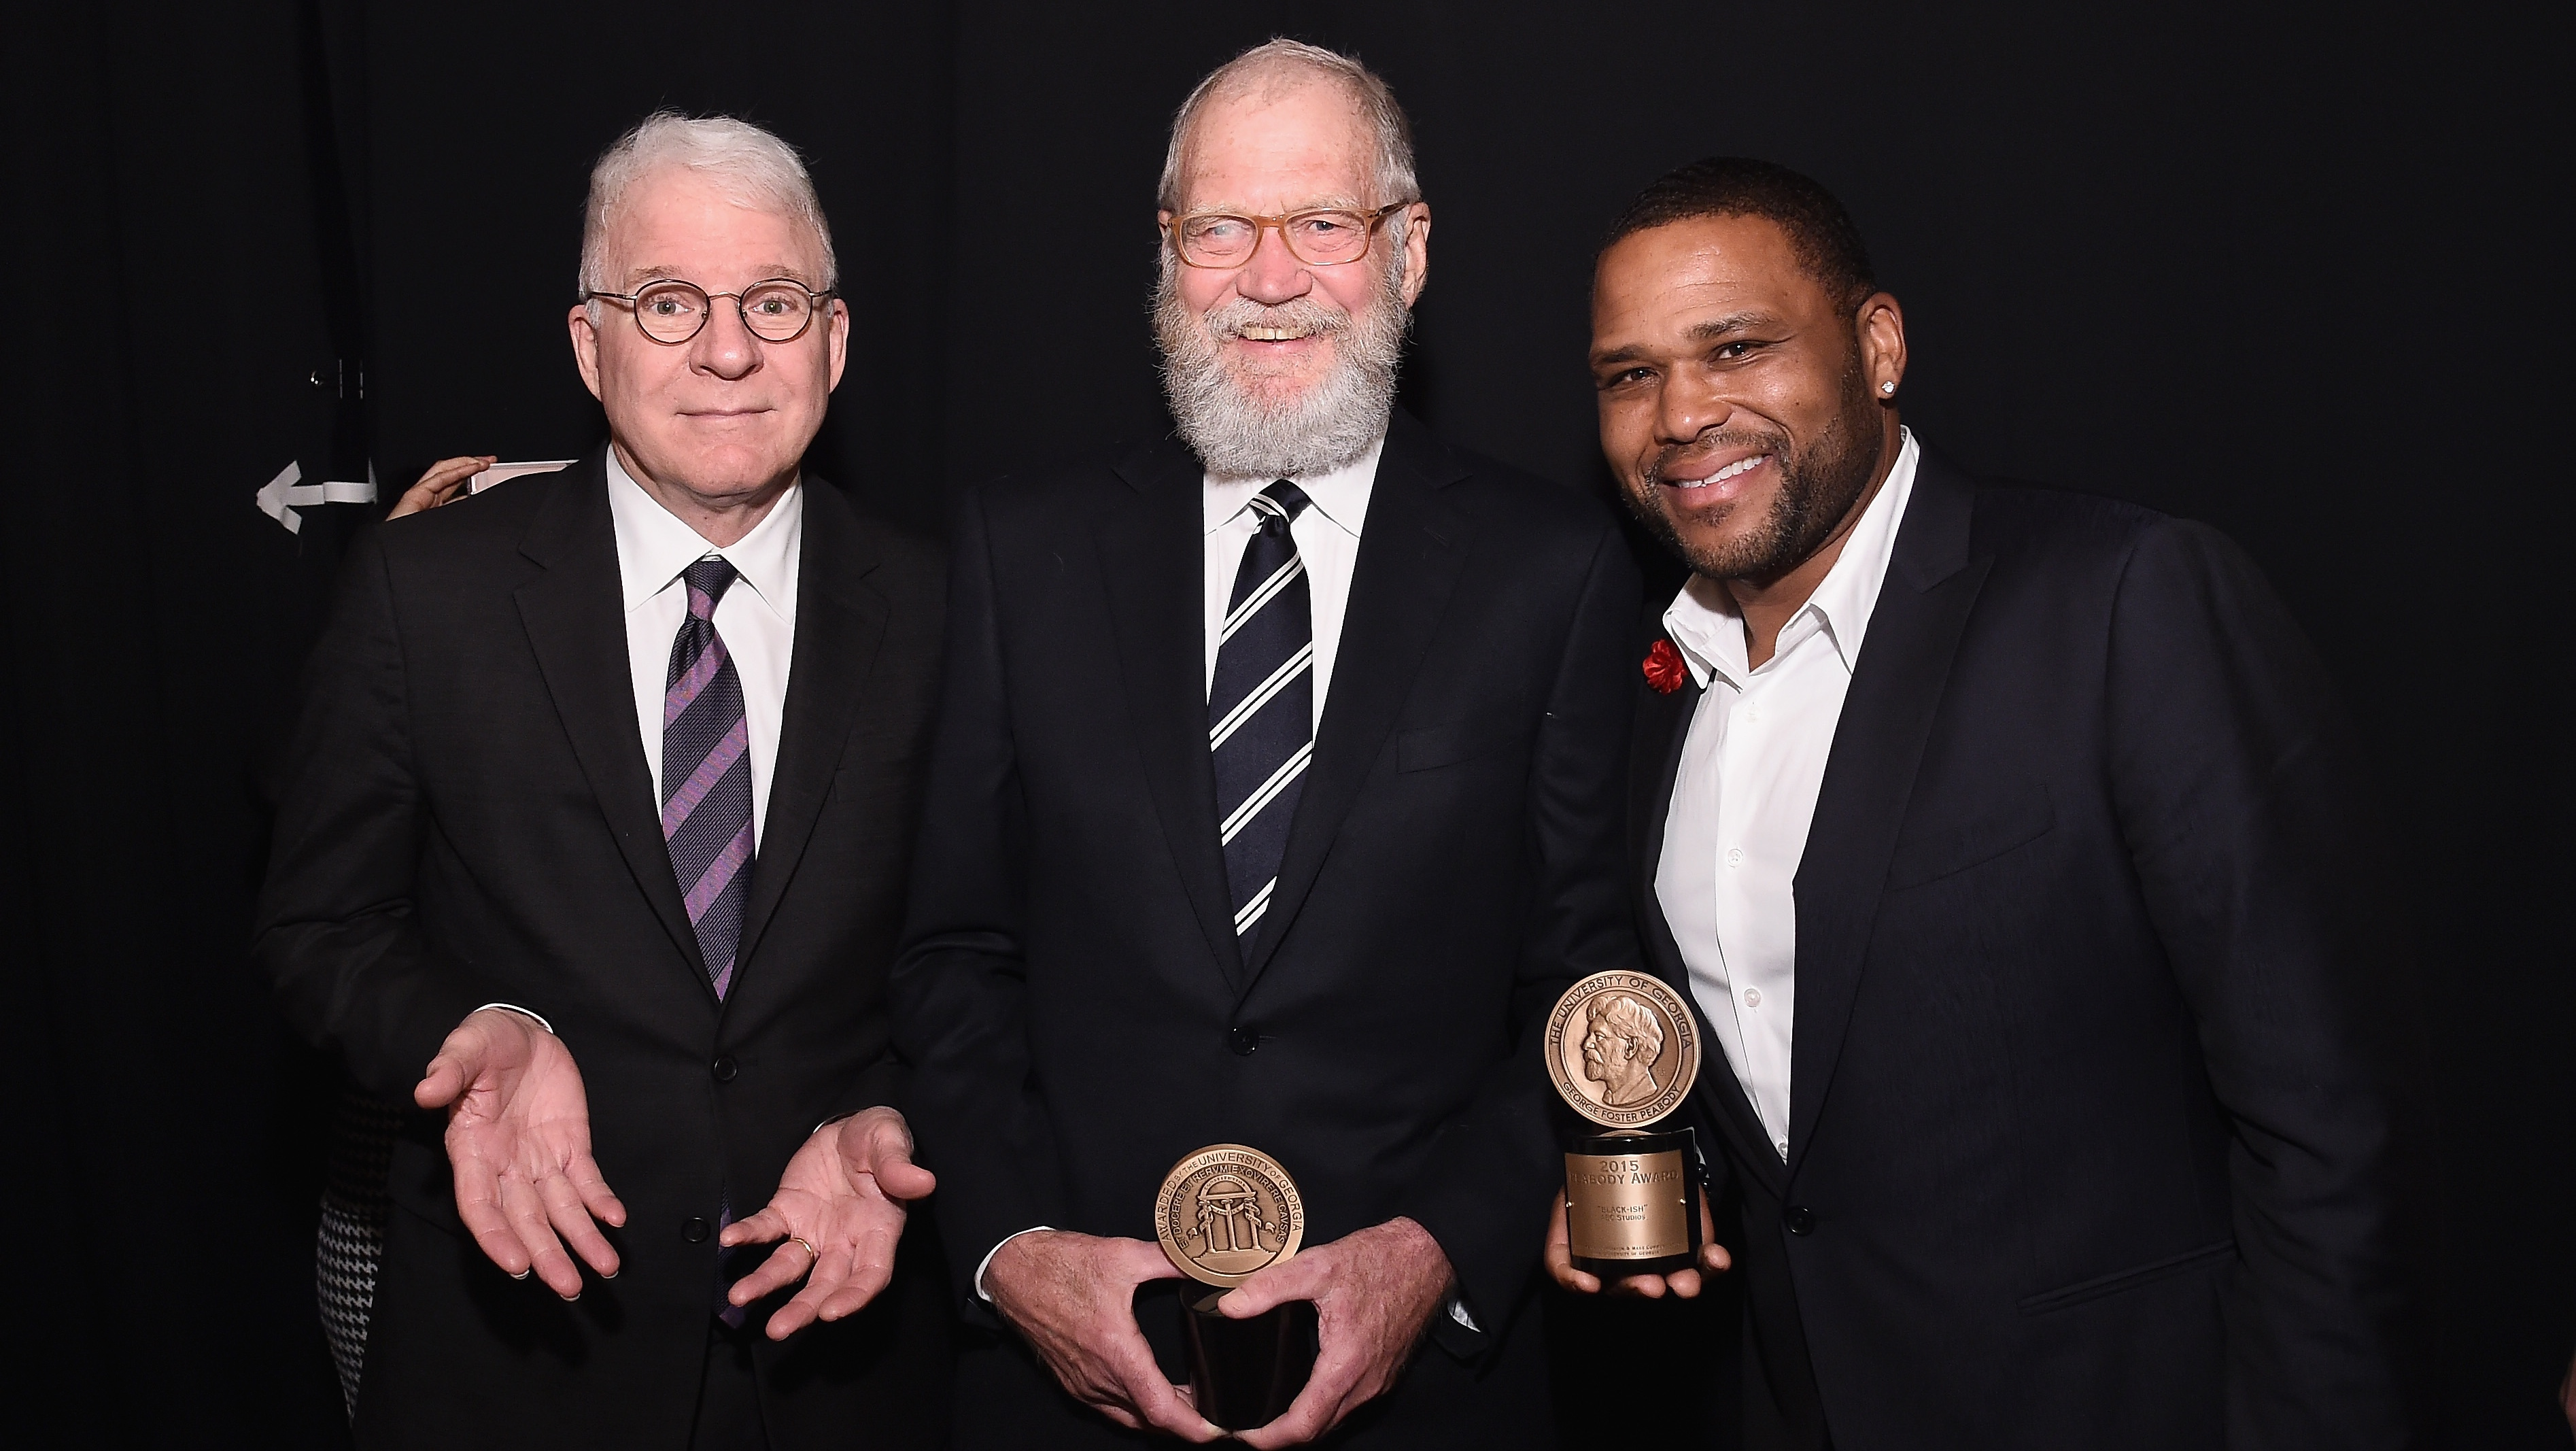 Steve Martin, David Letterman and Anthony Anderson at the Peabody Awards - H Getty 2016